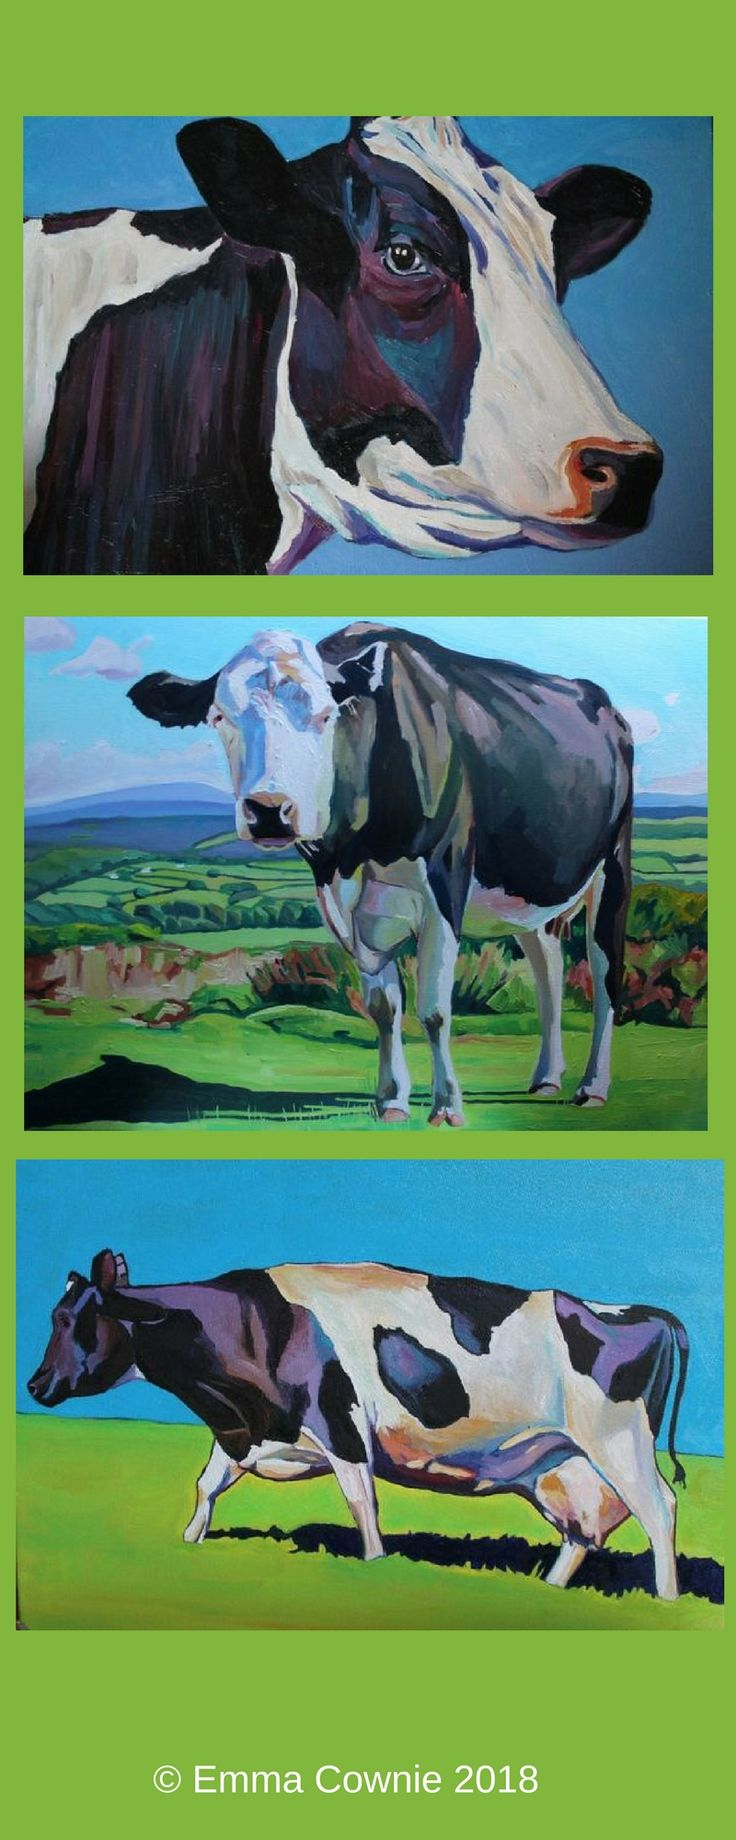 Three cow paintings by artist Emma Cownie